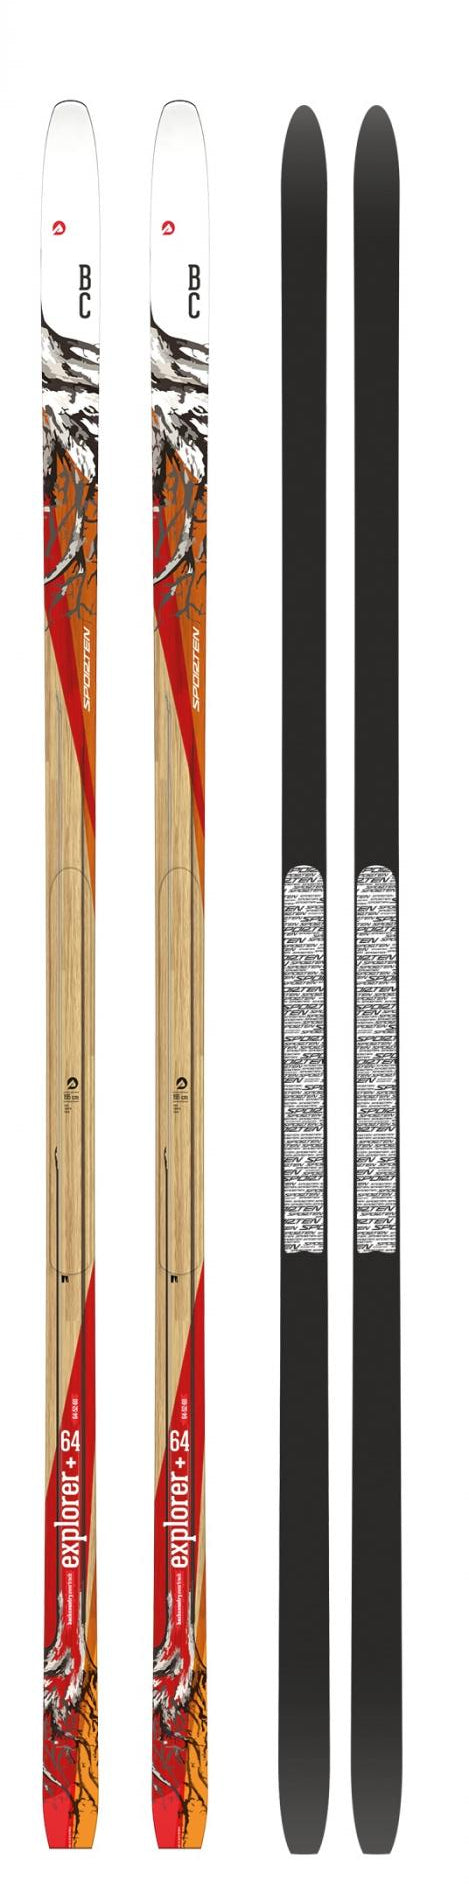 Sporten Skis Backcountry Explorer+ w Skin